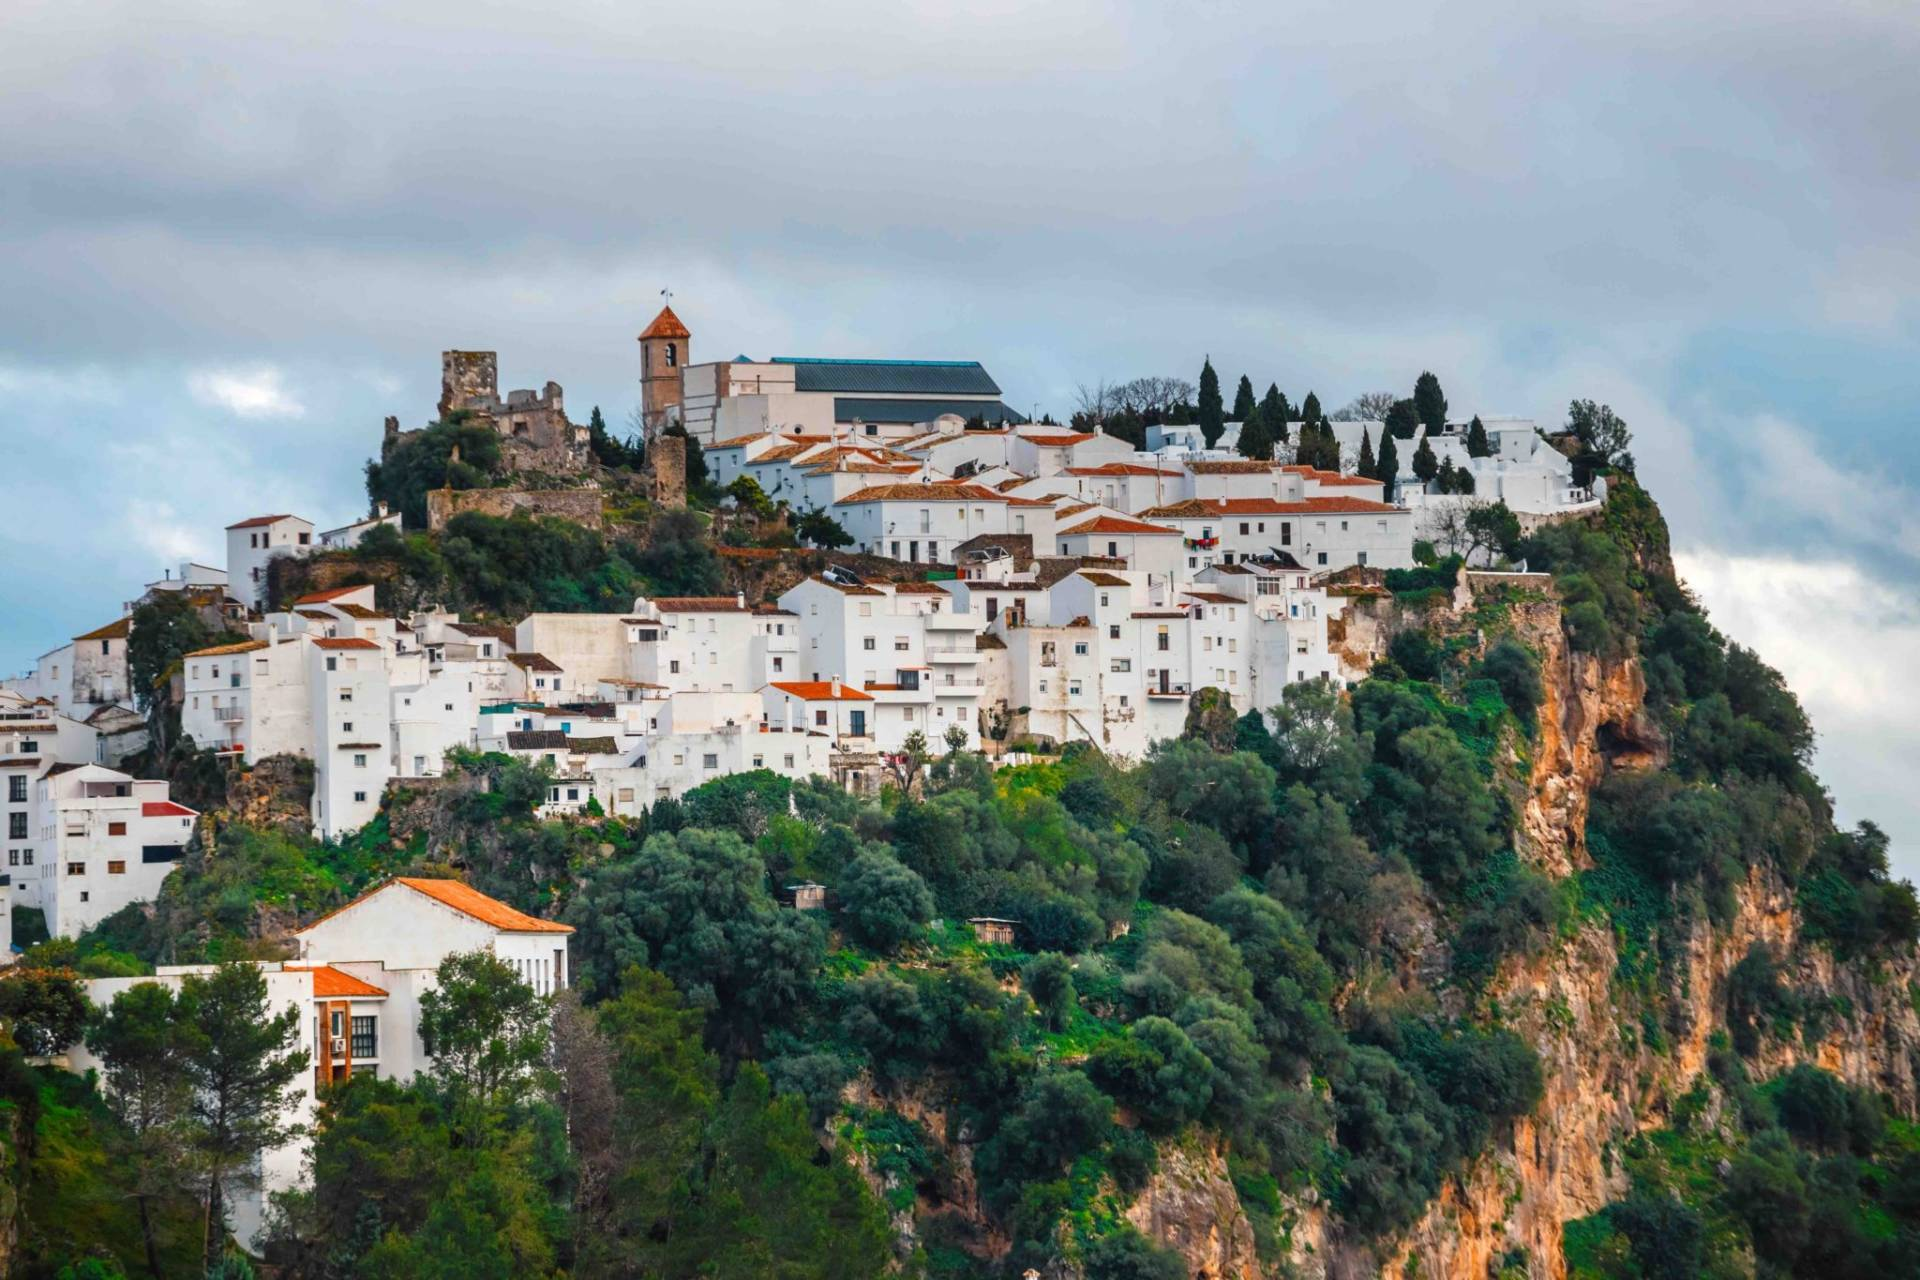 Going on vacatation? Book a transfer to Casares from Malaga Airport